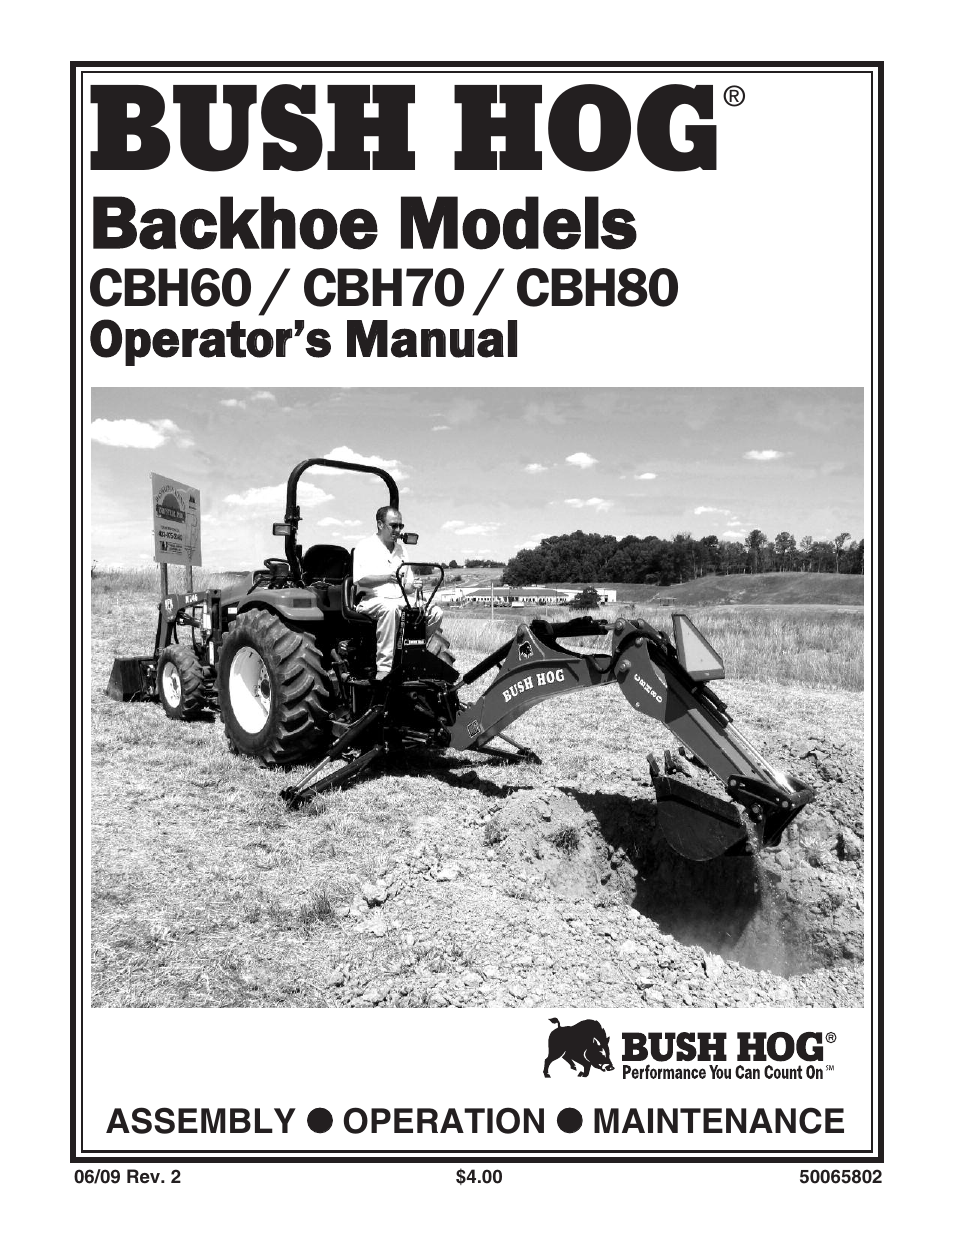 Bush Hog CBH80 User Manual | 56 pages | Also for: CBH70, CBH60